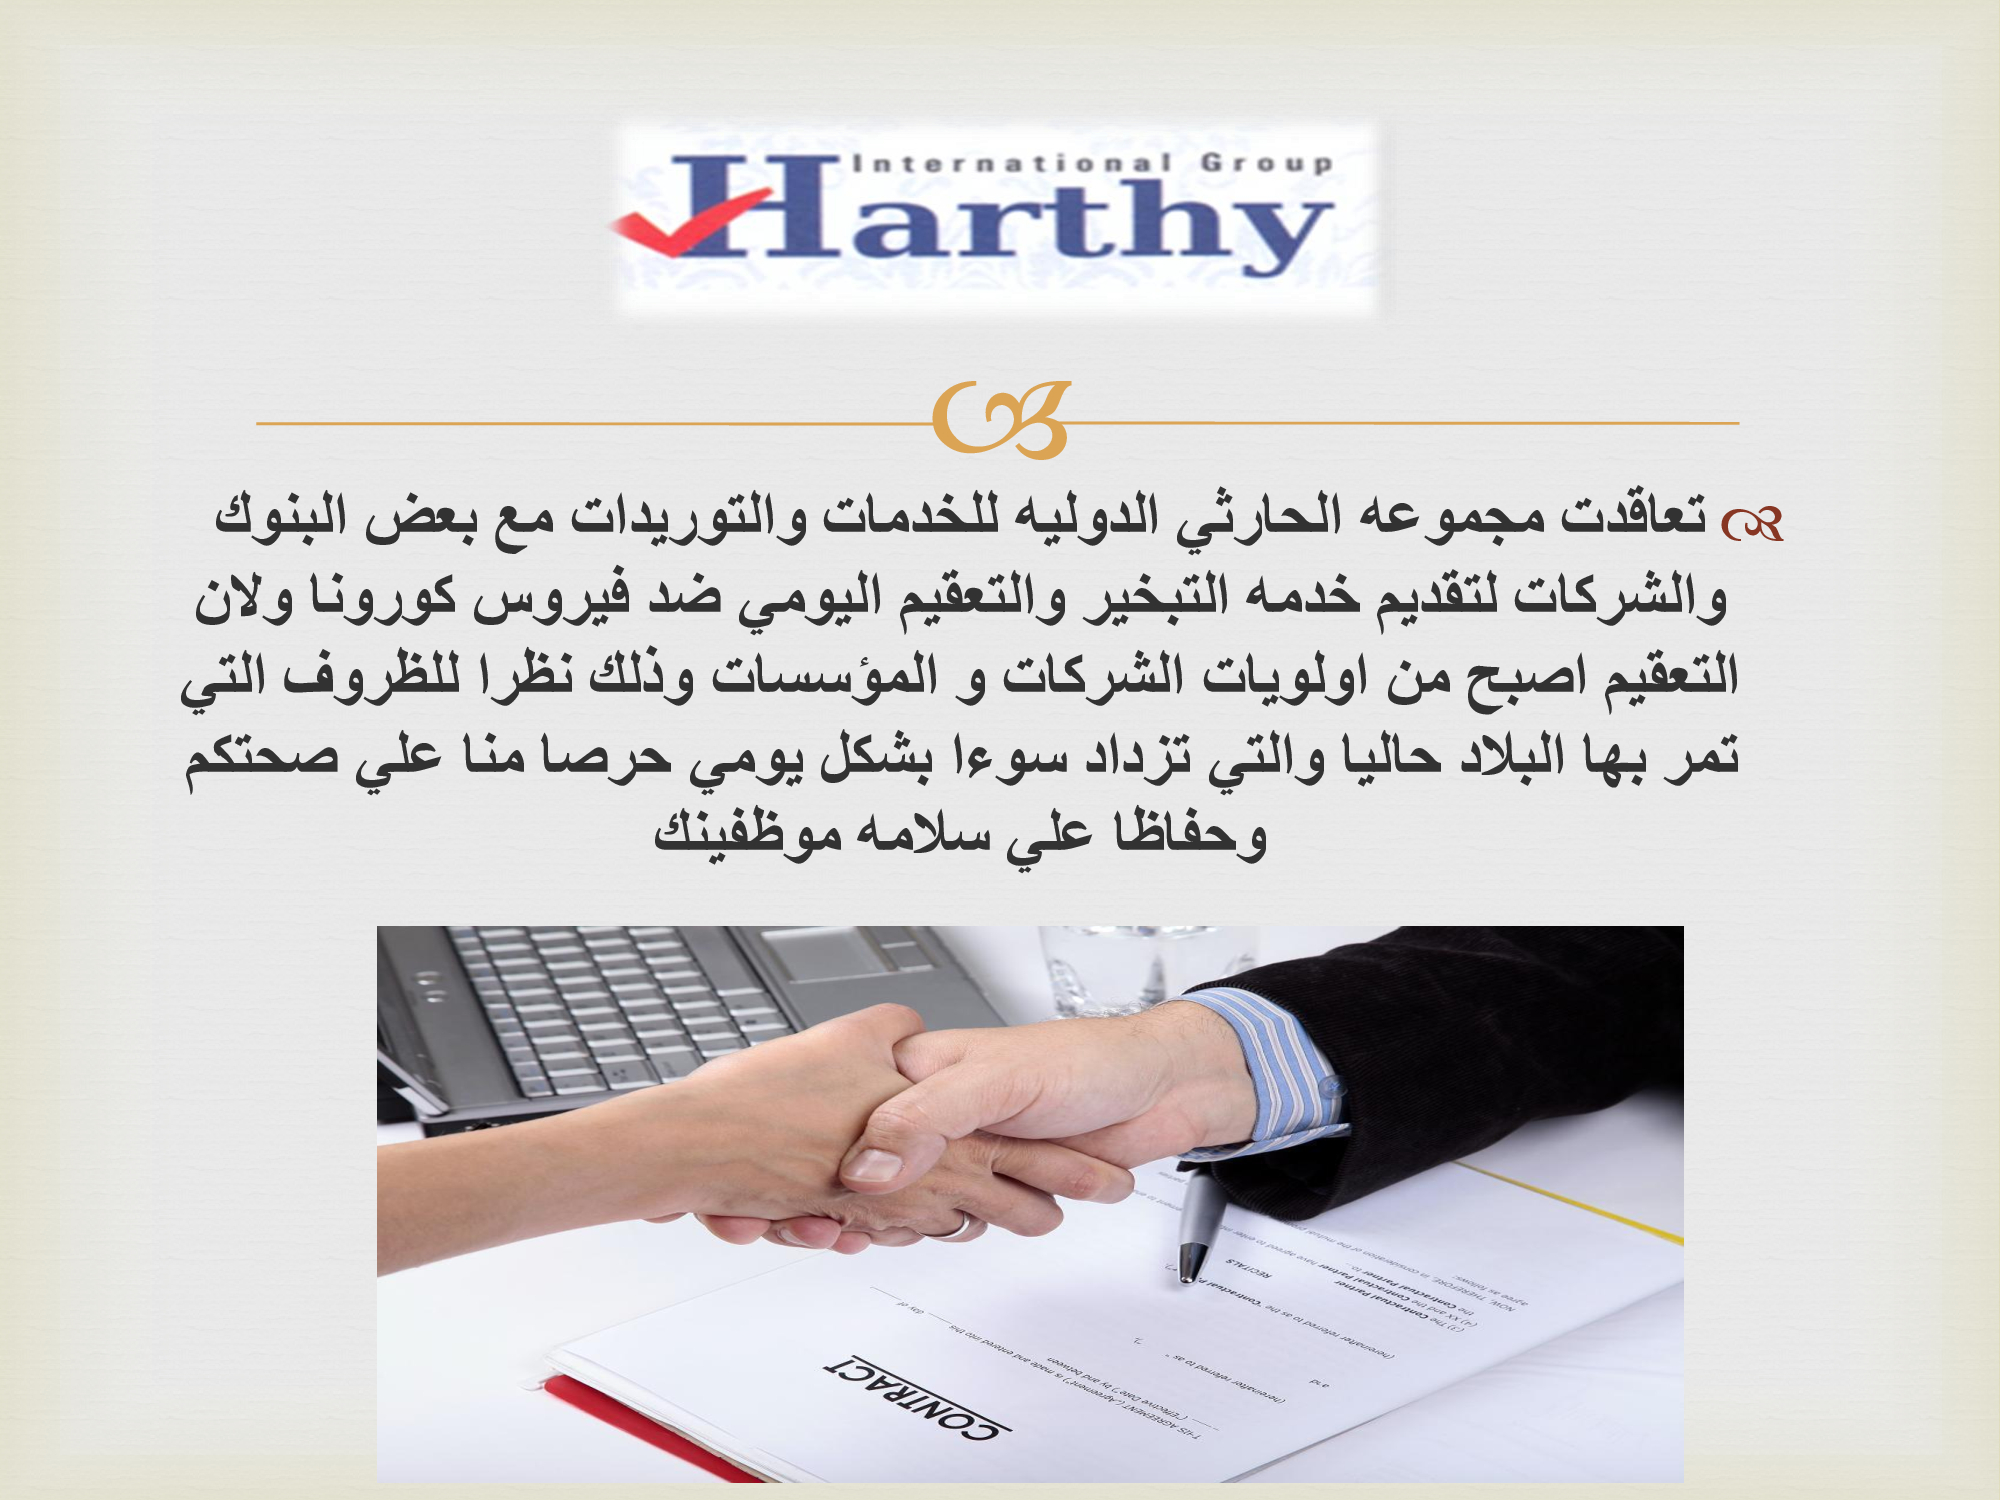 News - Harthy international Group